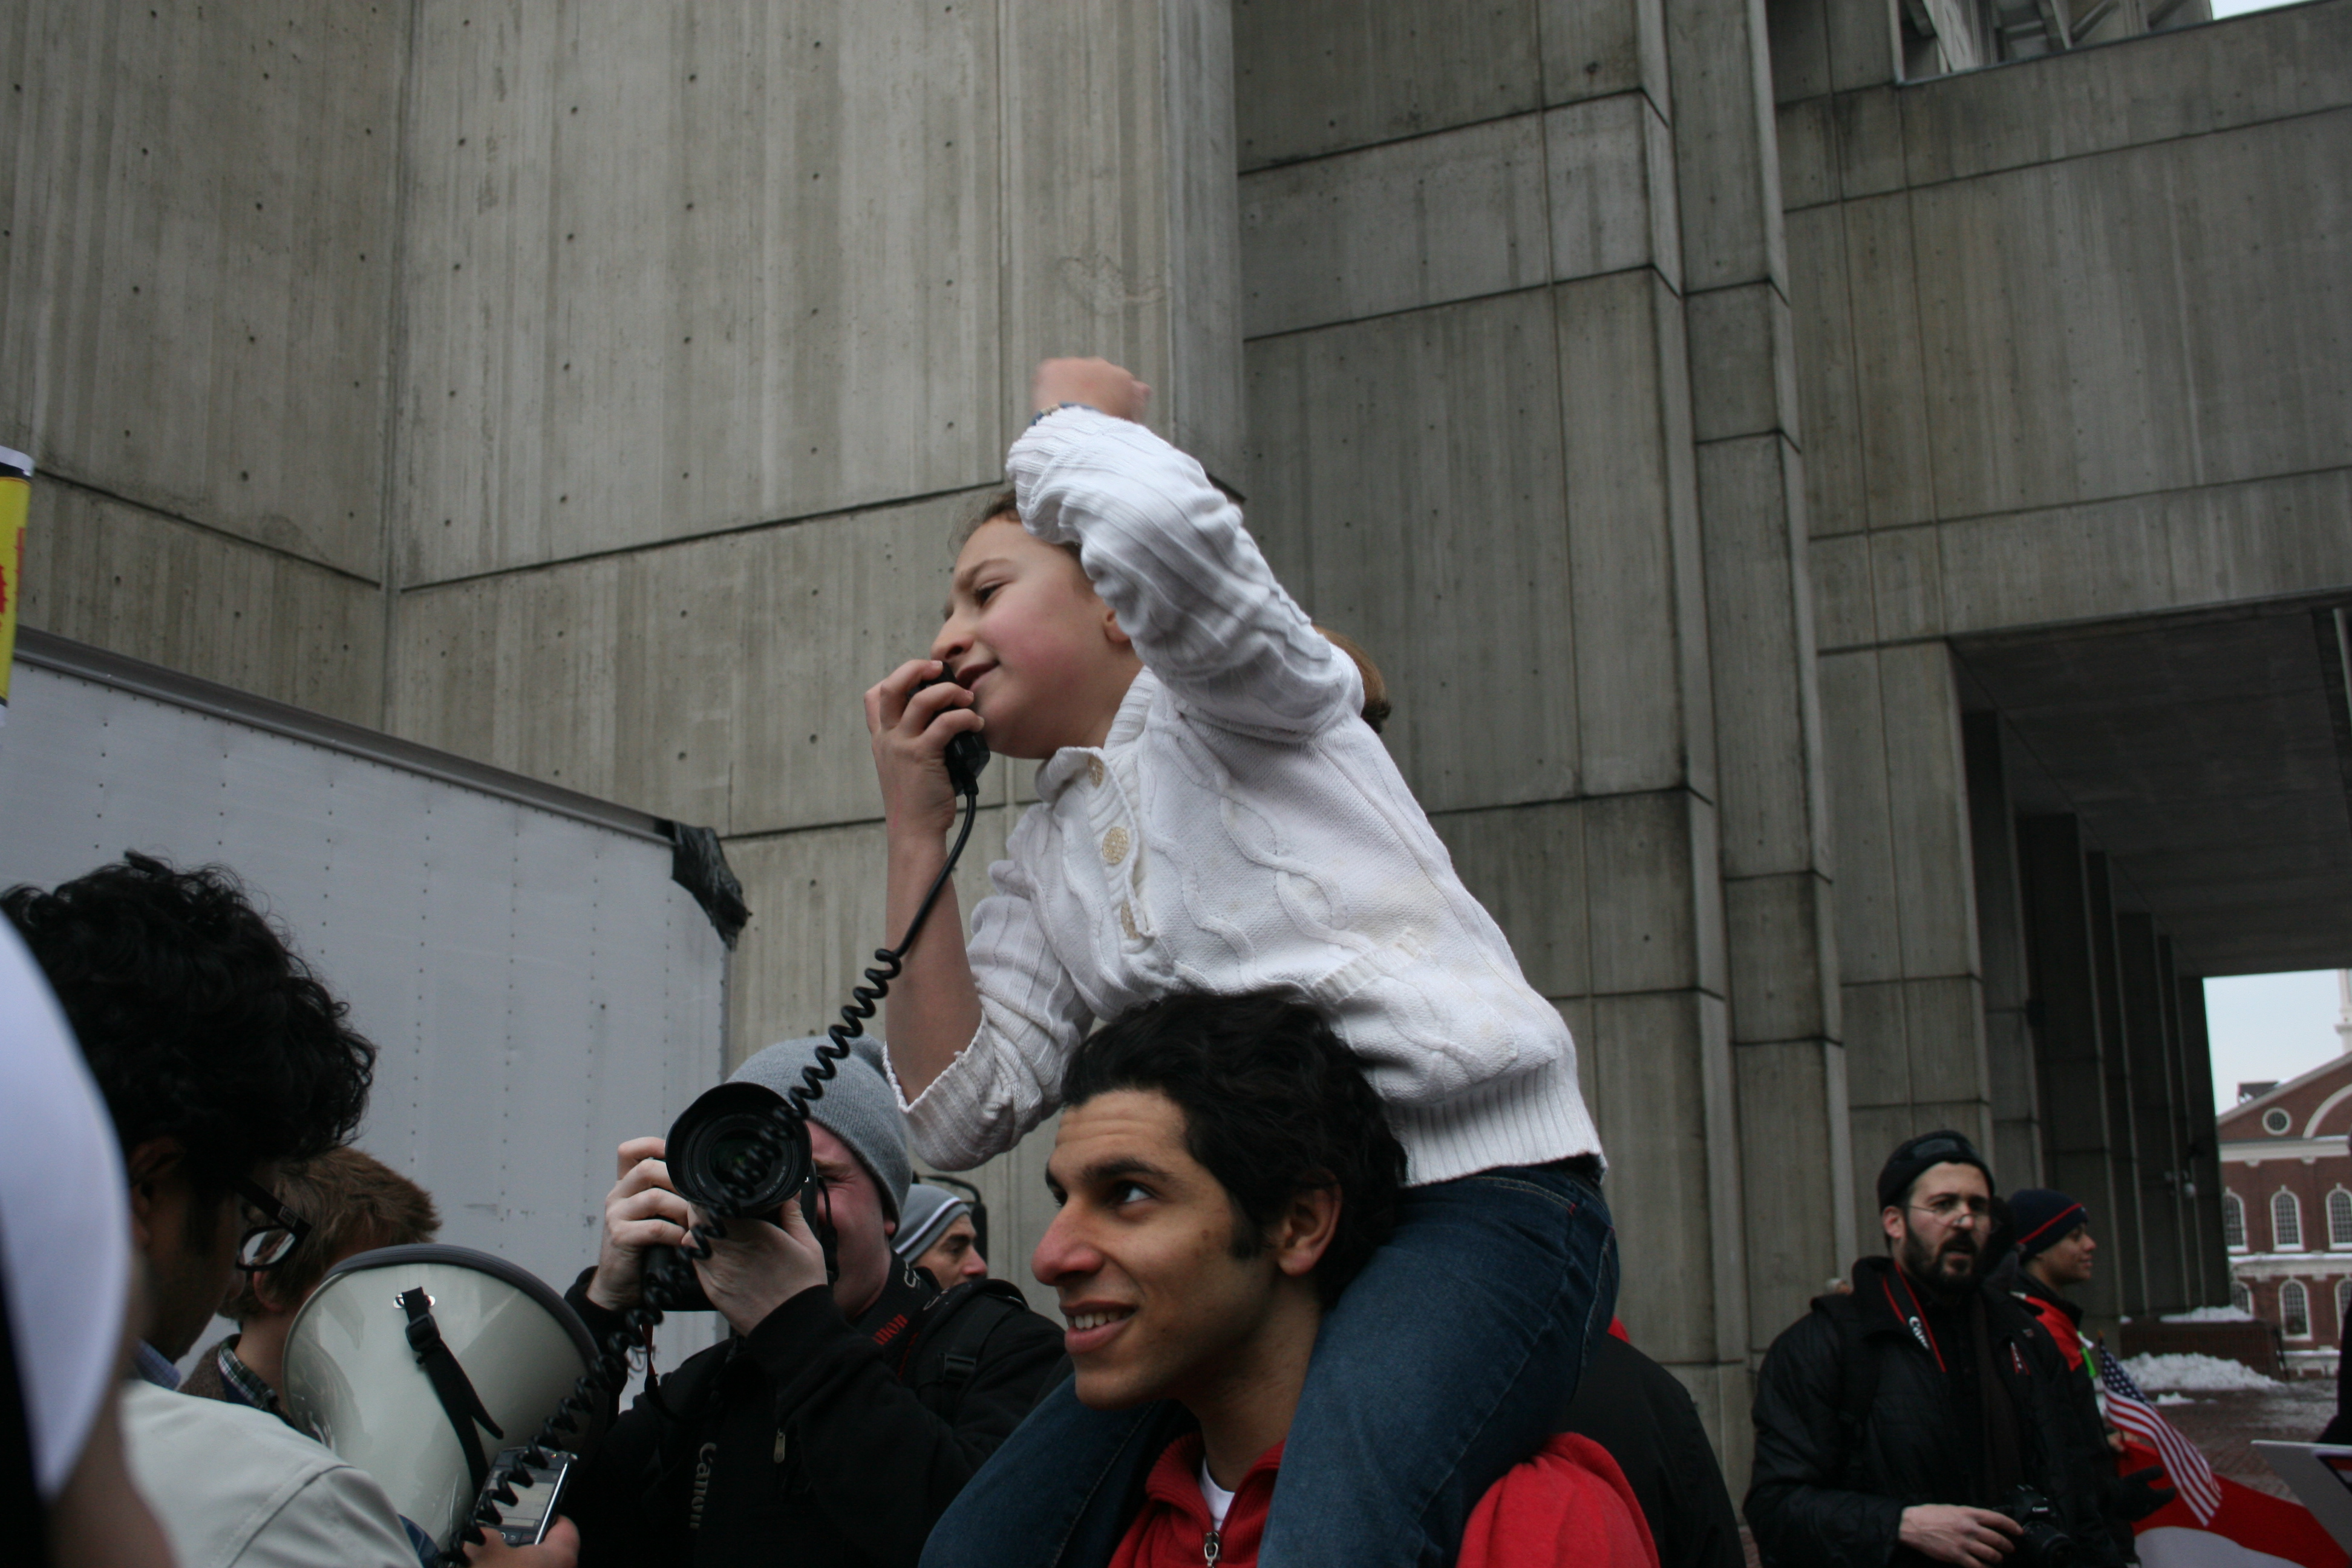 A young girl leads the chanting